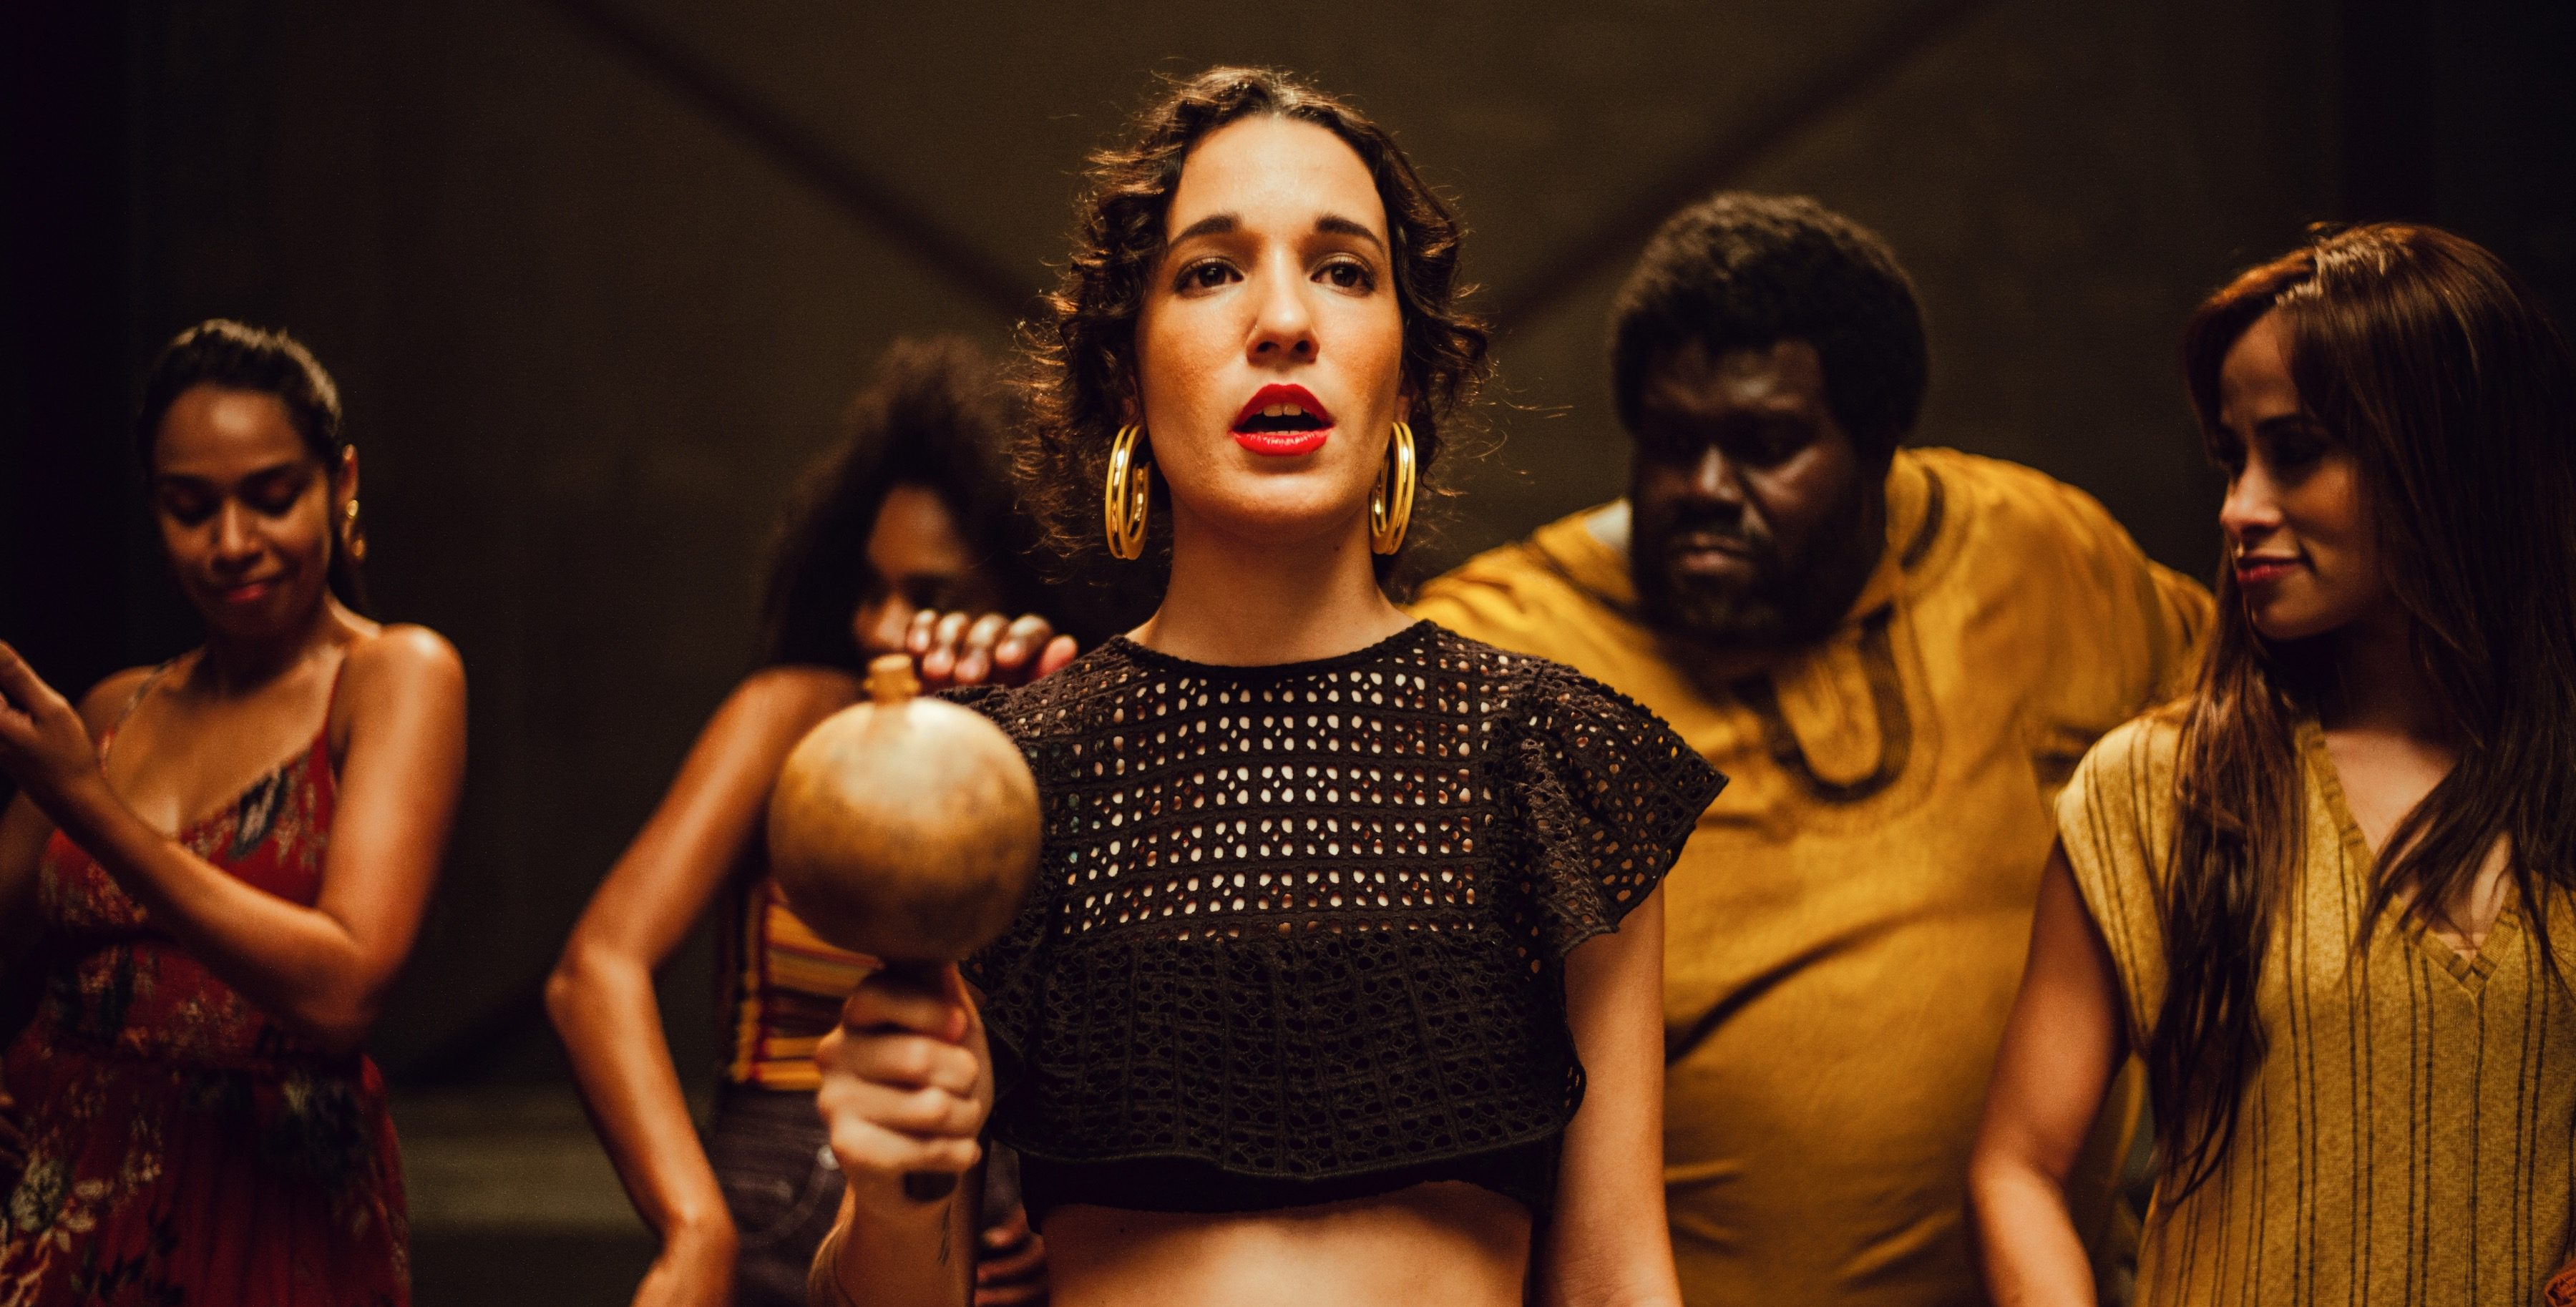 Puerto Rican Songstress iLe Announces 15-Date North American Tour